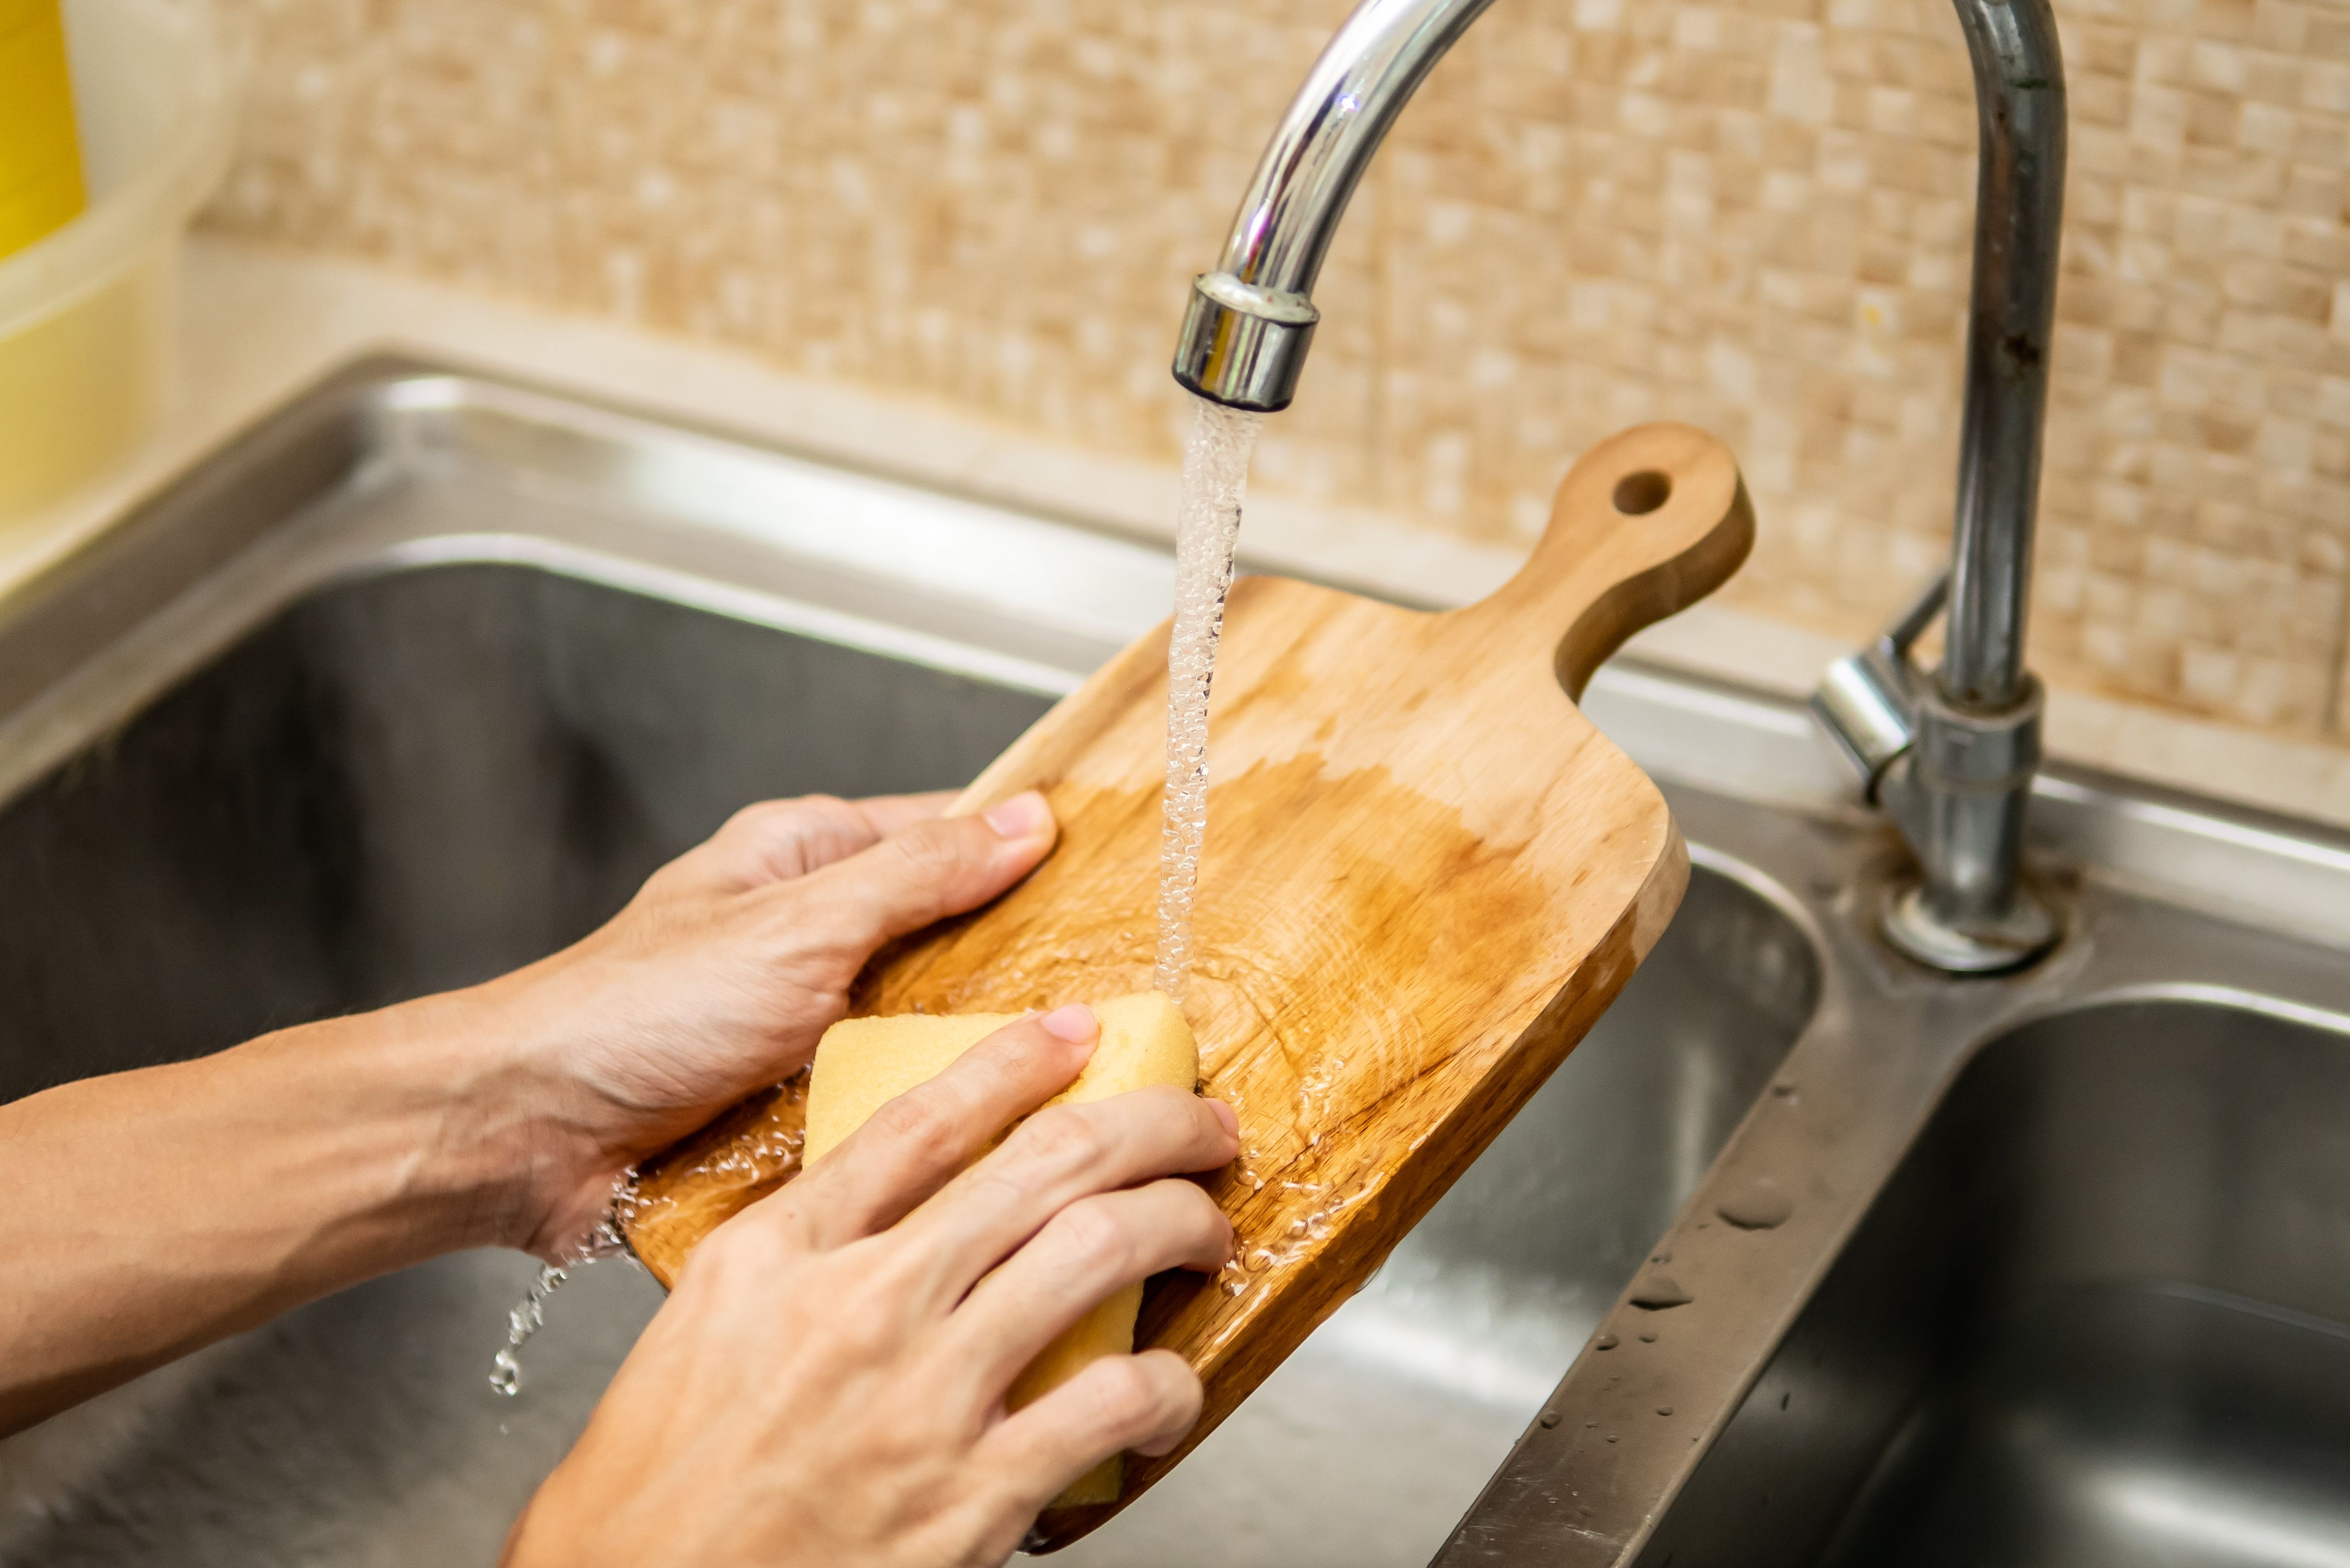 How To Clean A Wooden Cutting Board Plus Any Cutting Board